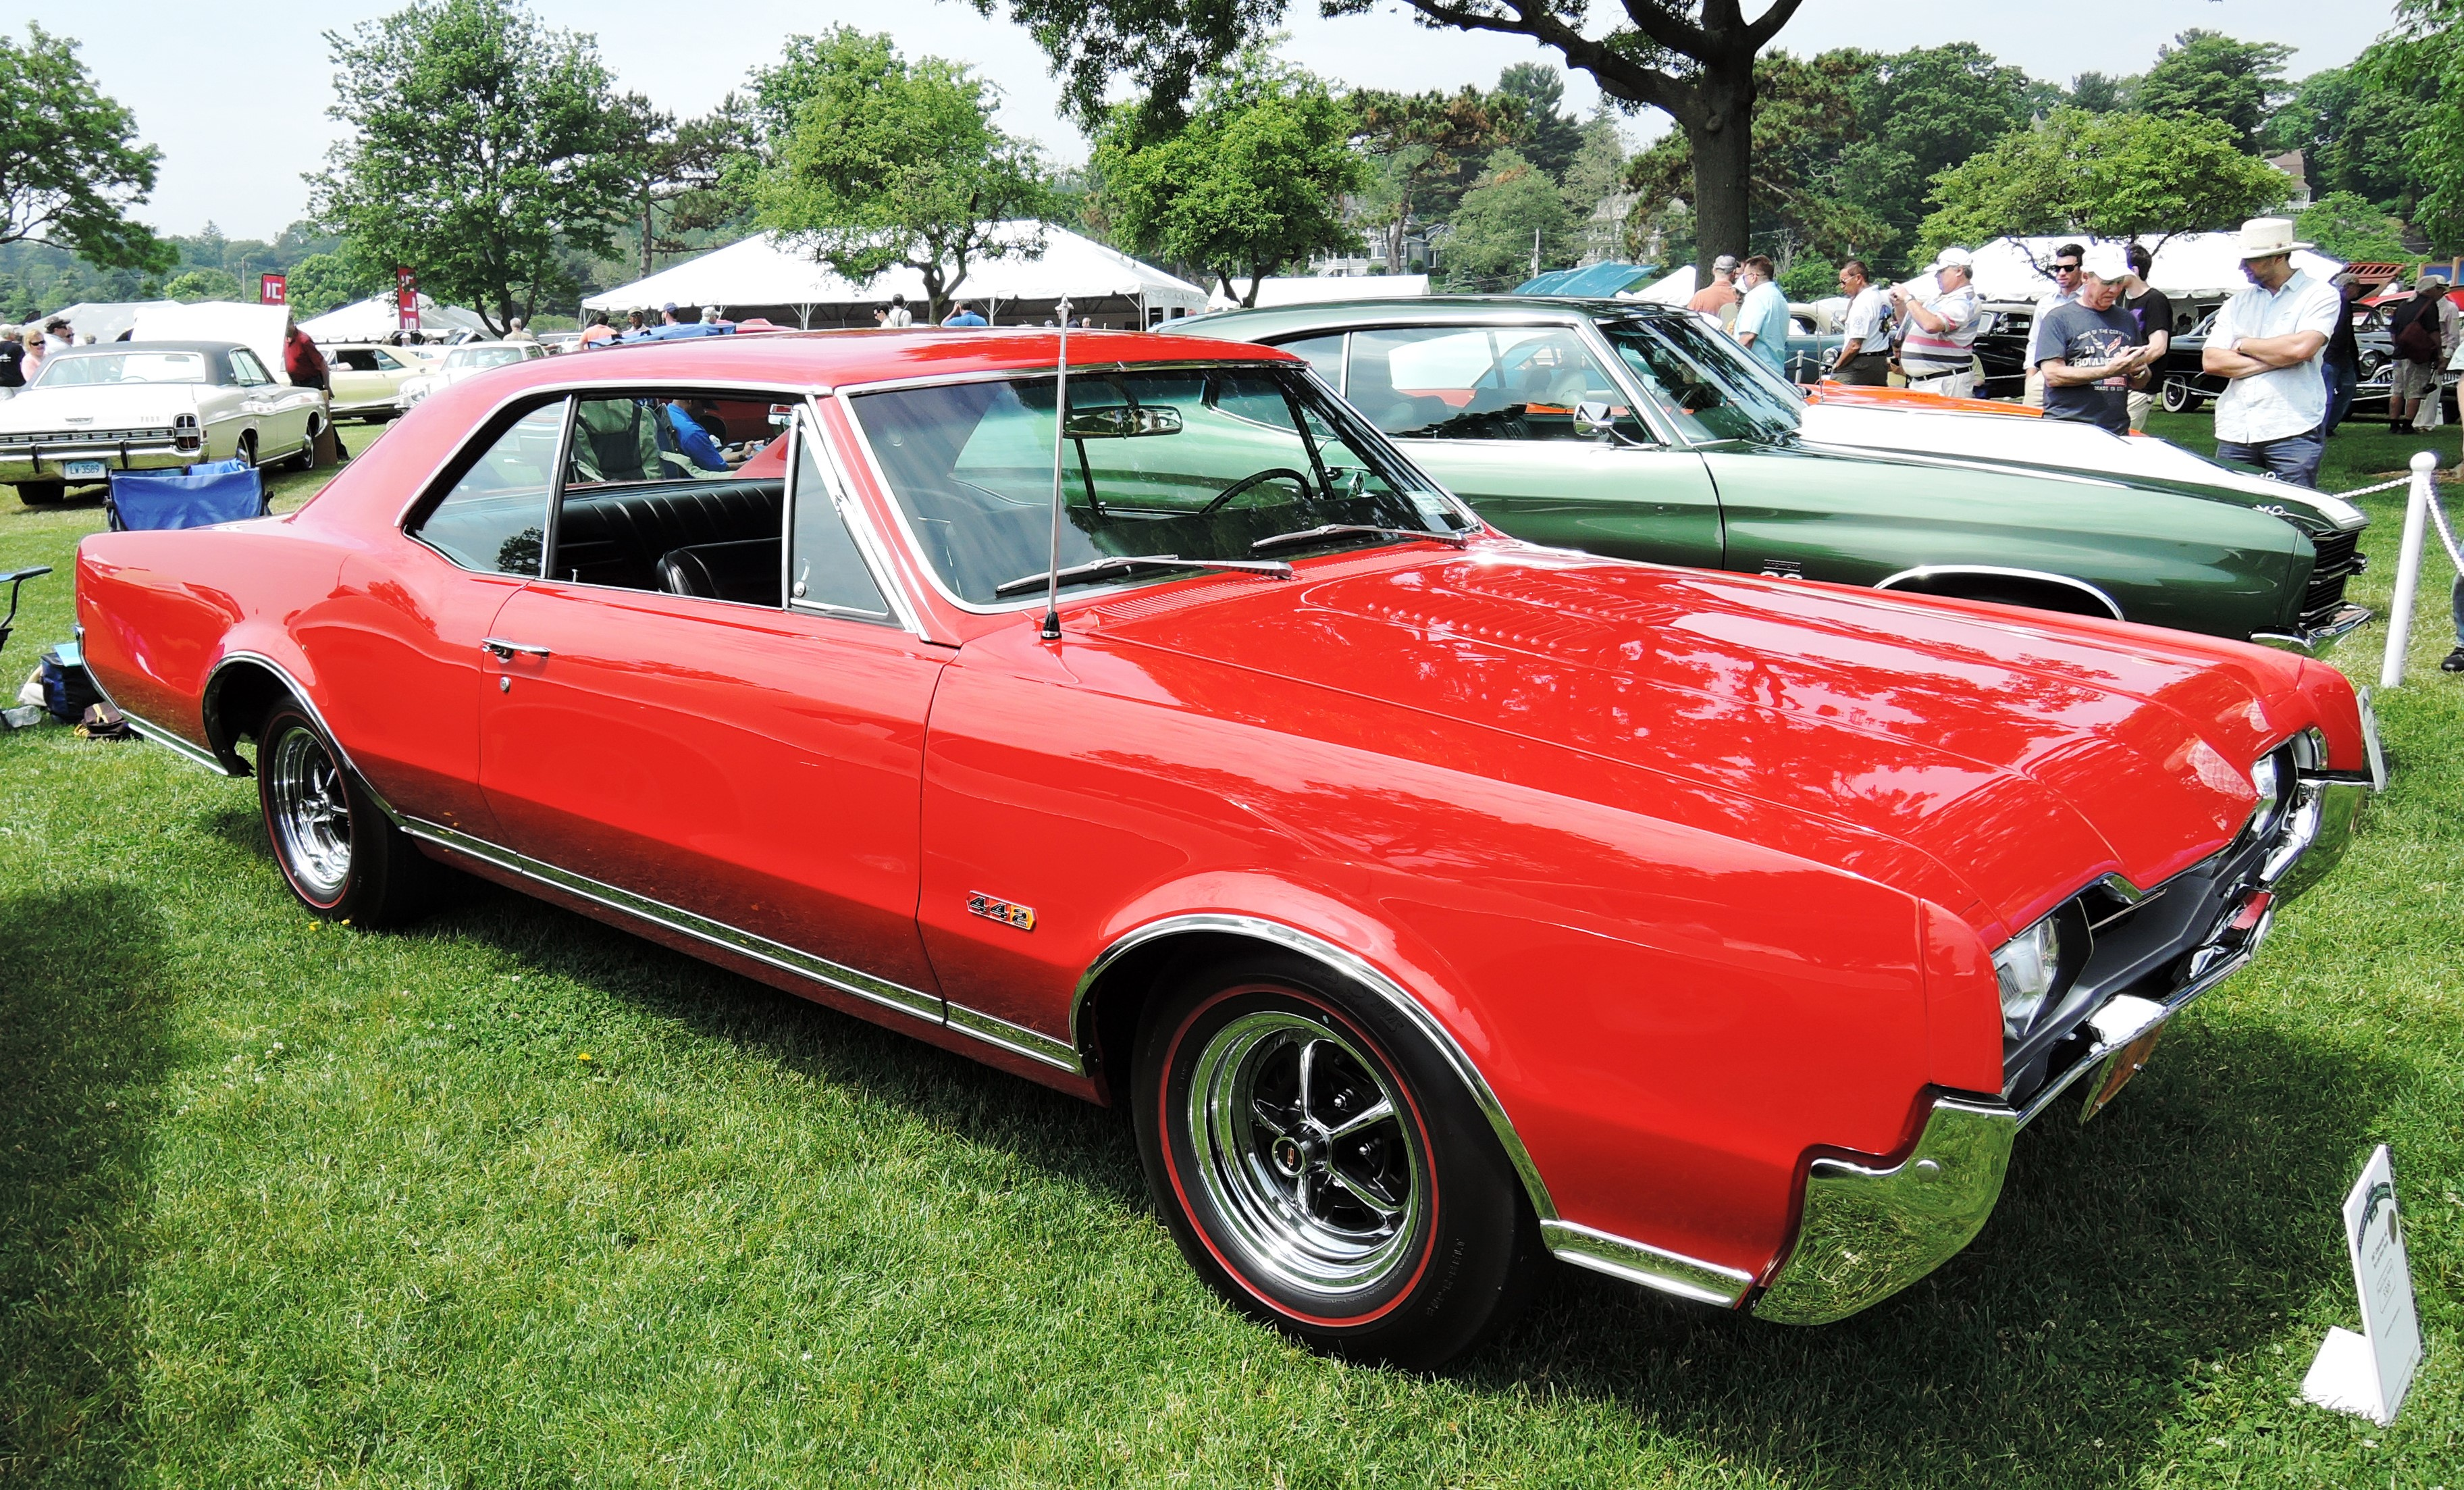 red 1967 Oldmobile 442 - greenwich concours